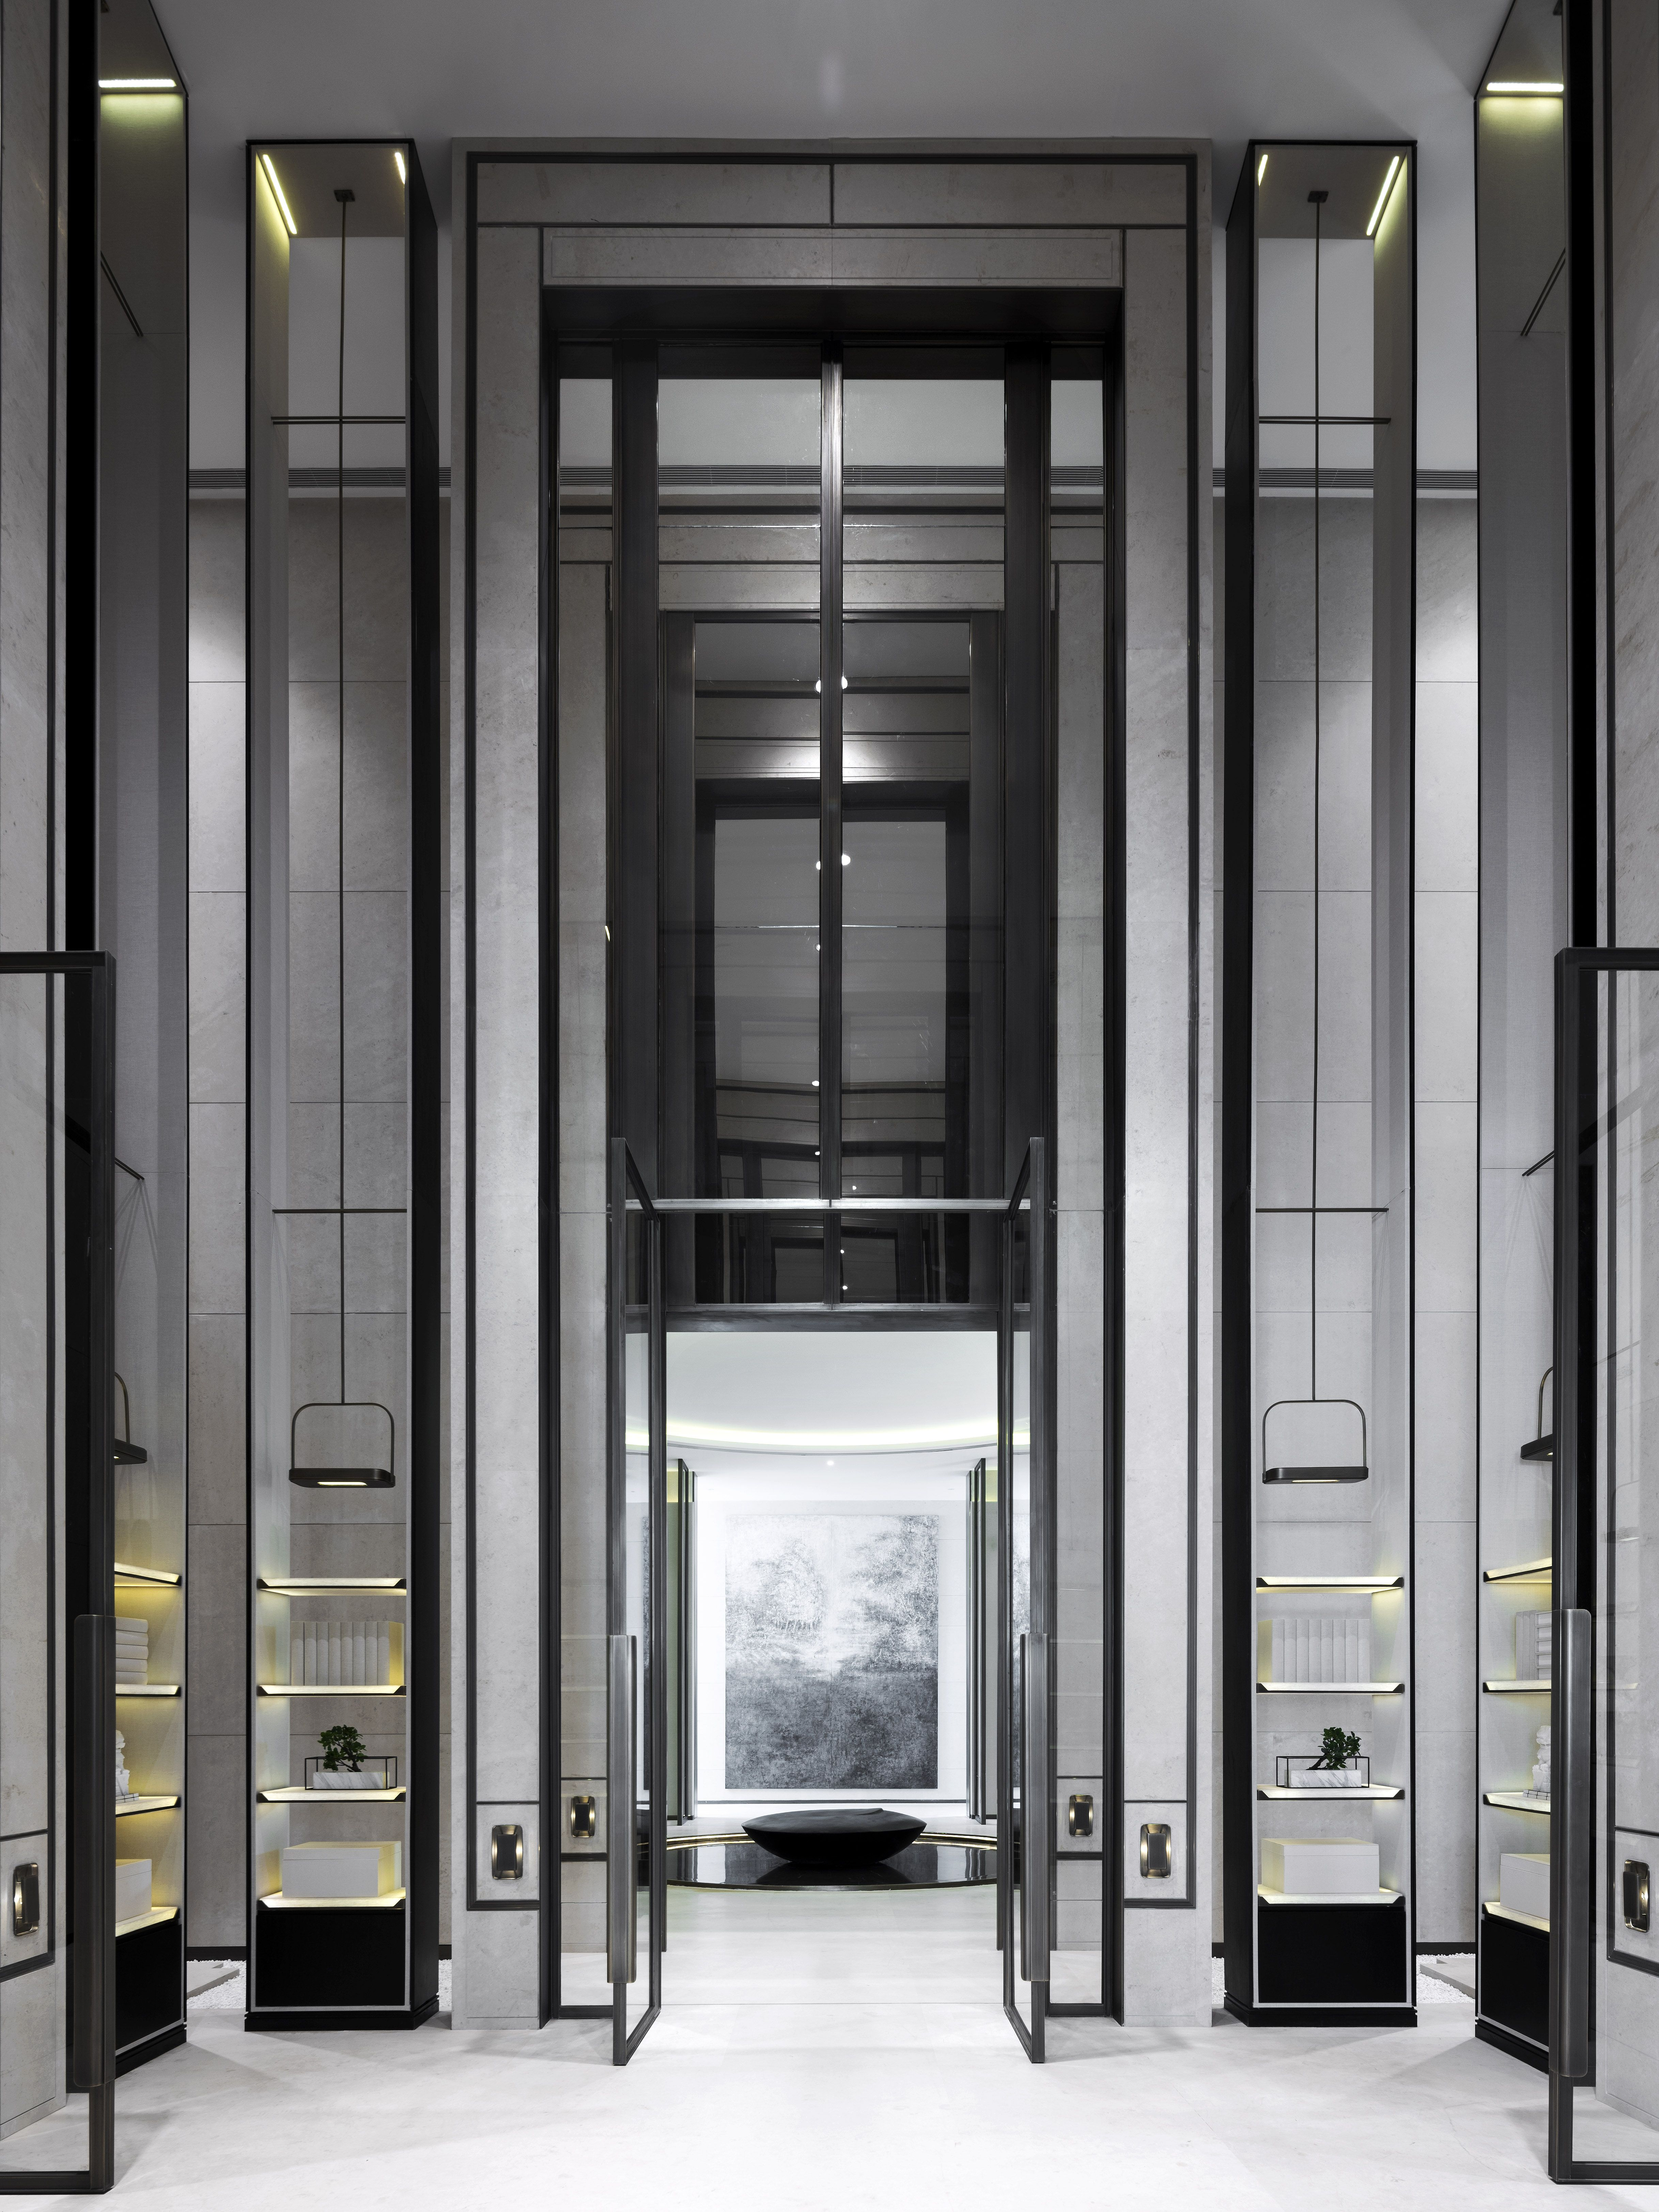 Pin by omo on 商业室内 pinterest lobbies interiors and hospitality